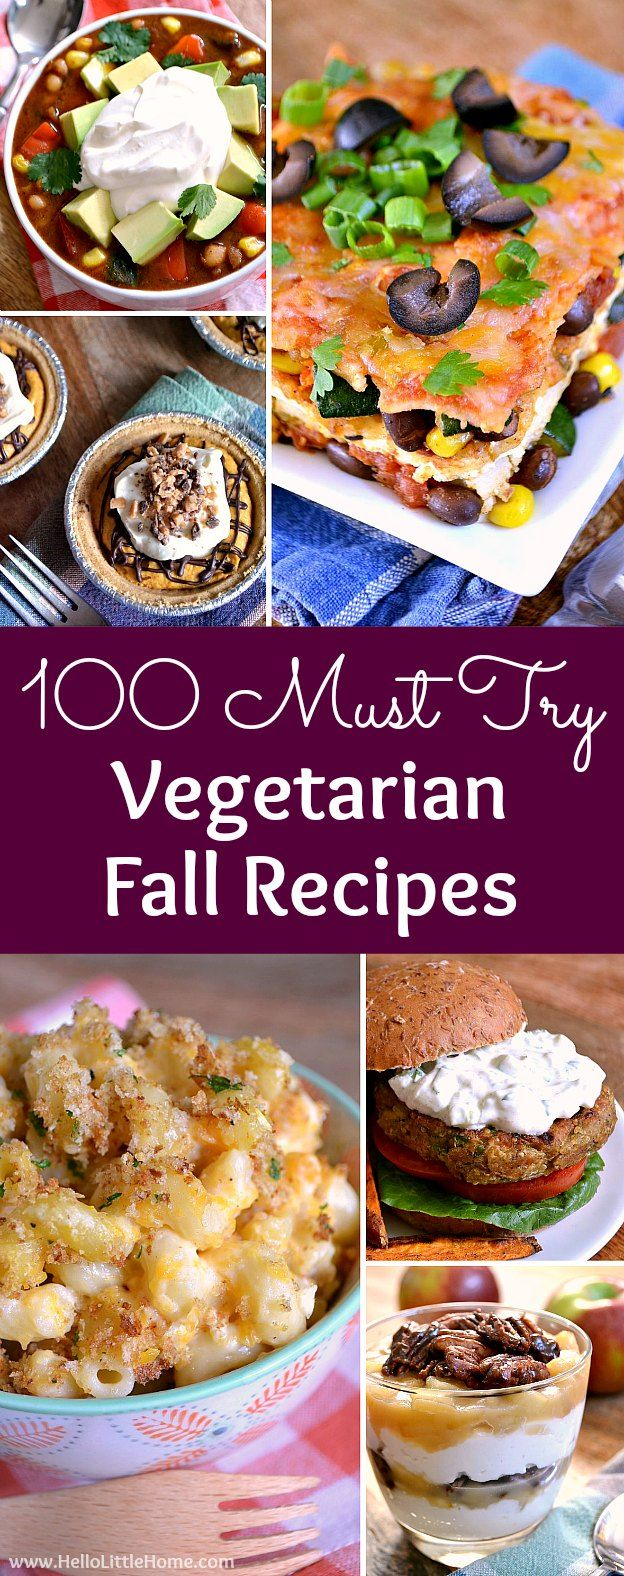 26582 best fast recipes images on pinterest | food, recipes and